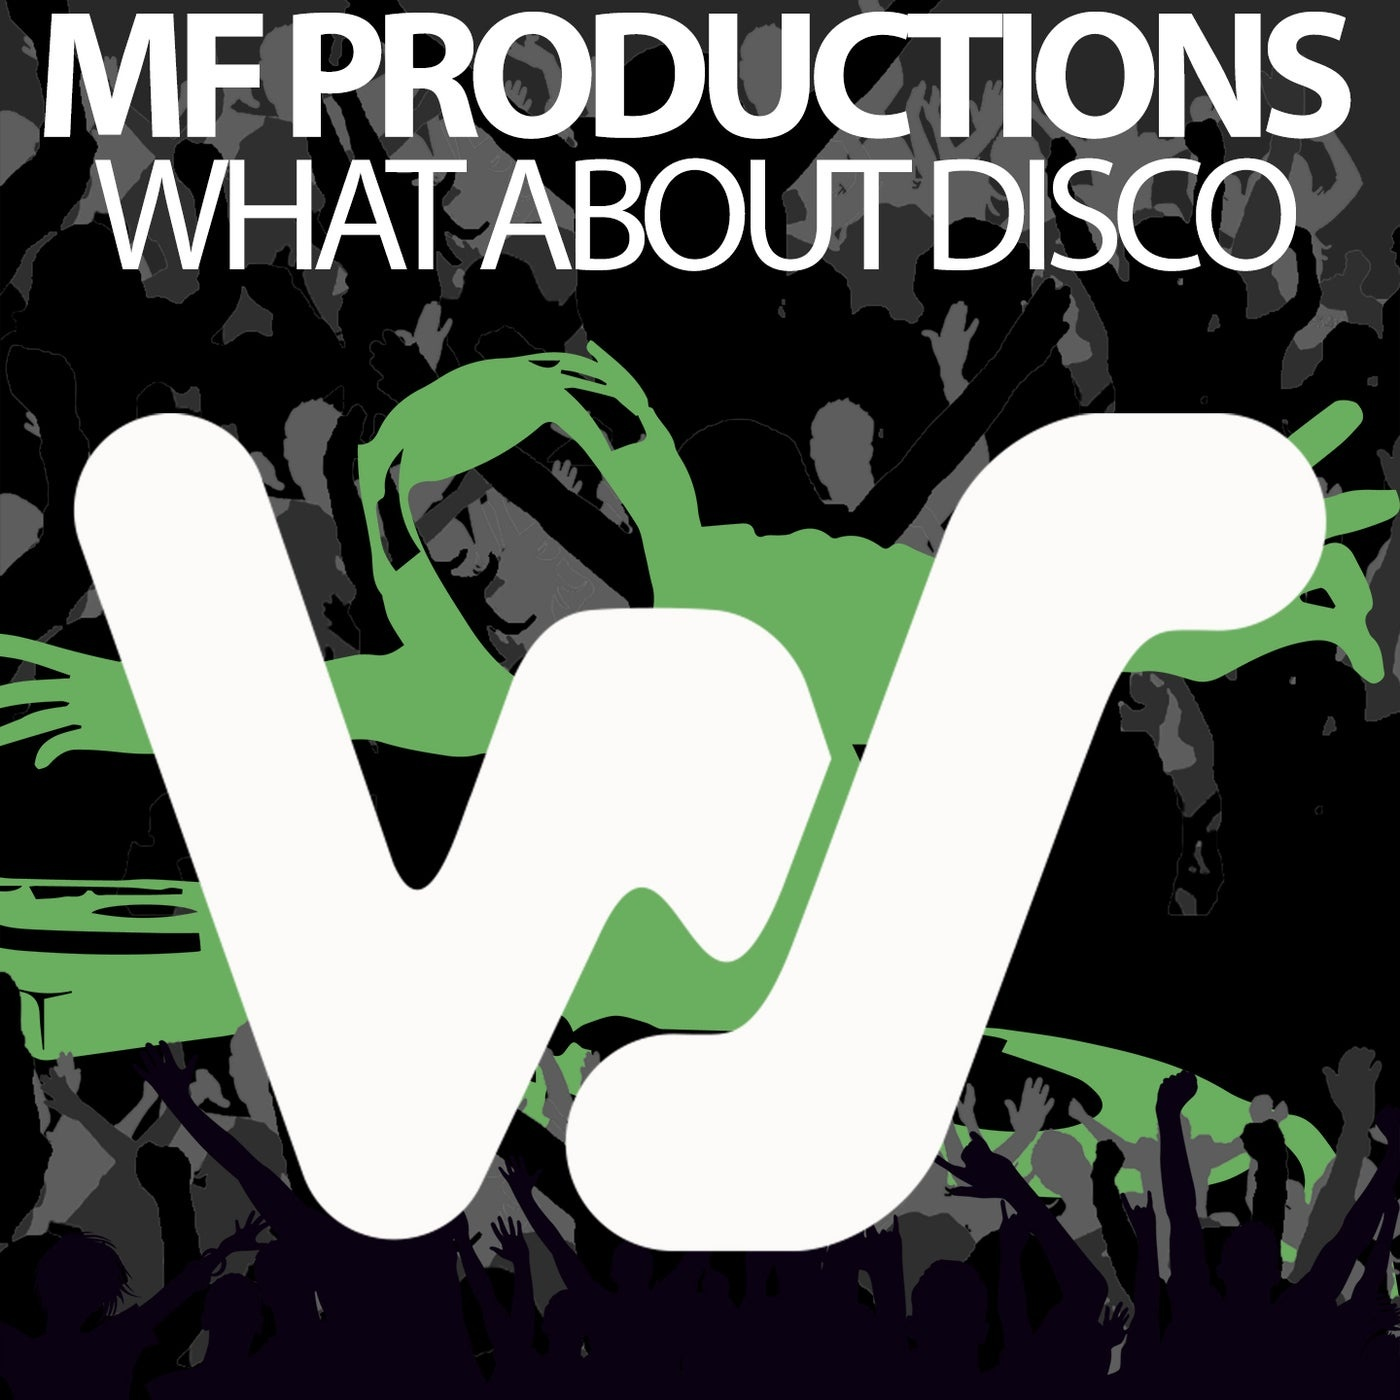 Cover - MF Productions - What About Disco (Original Mix)